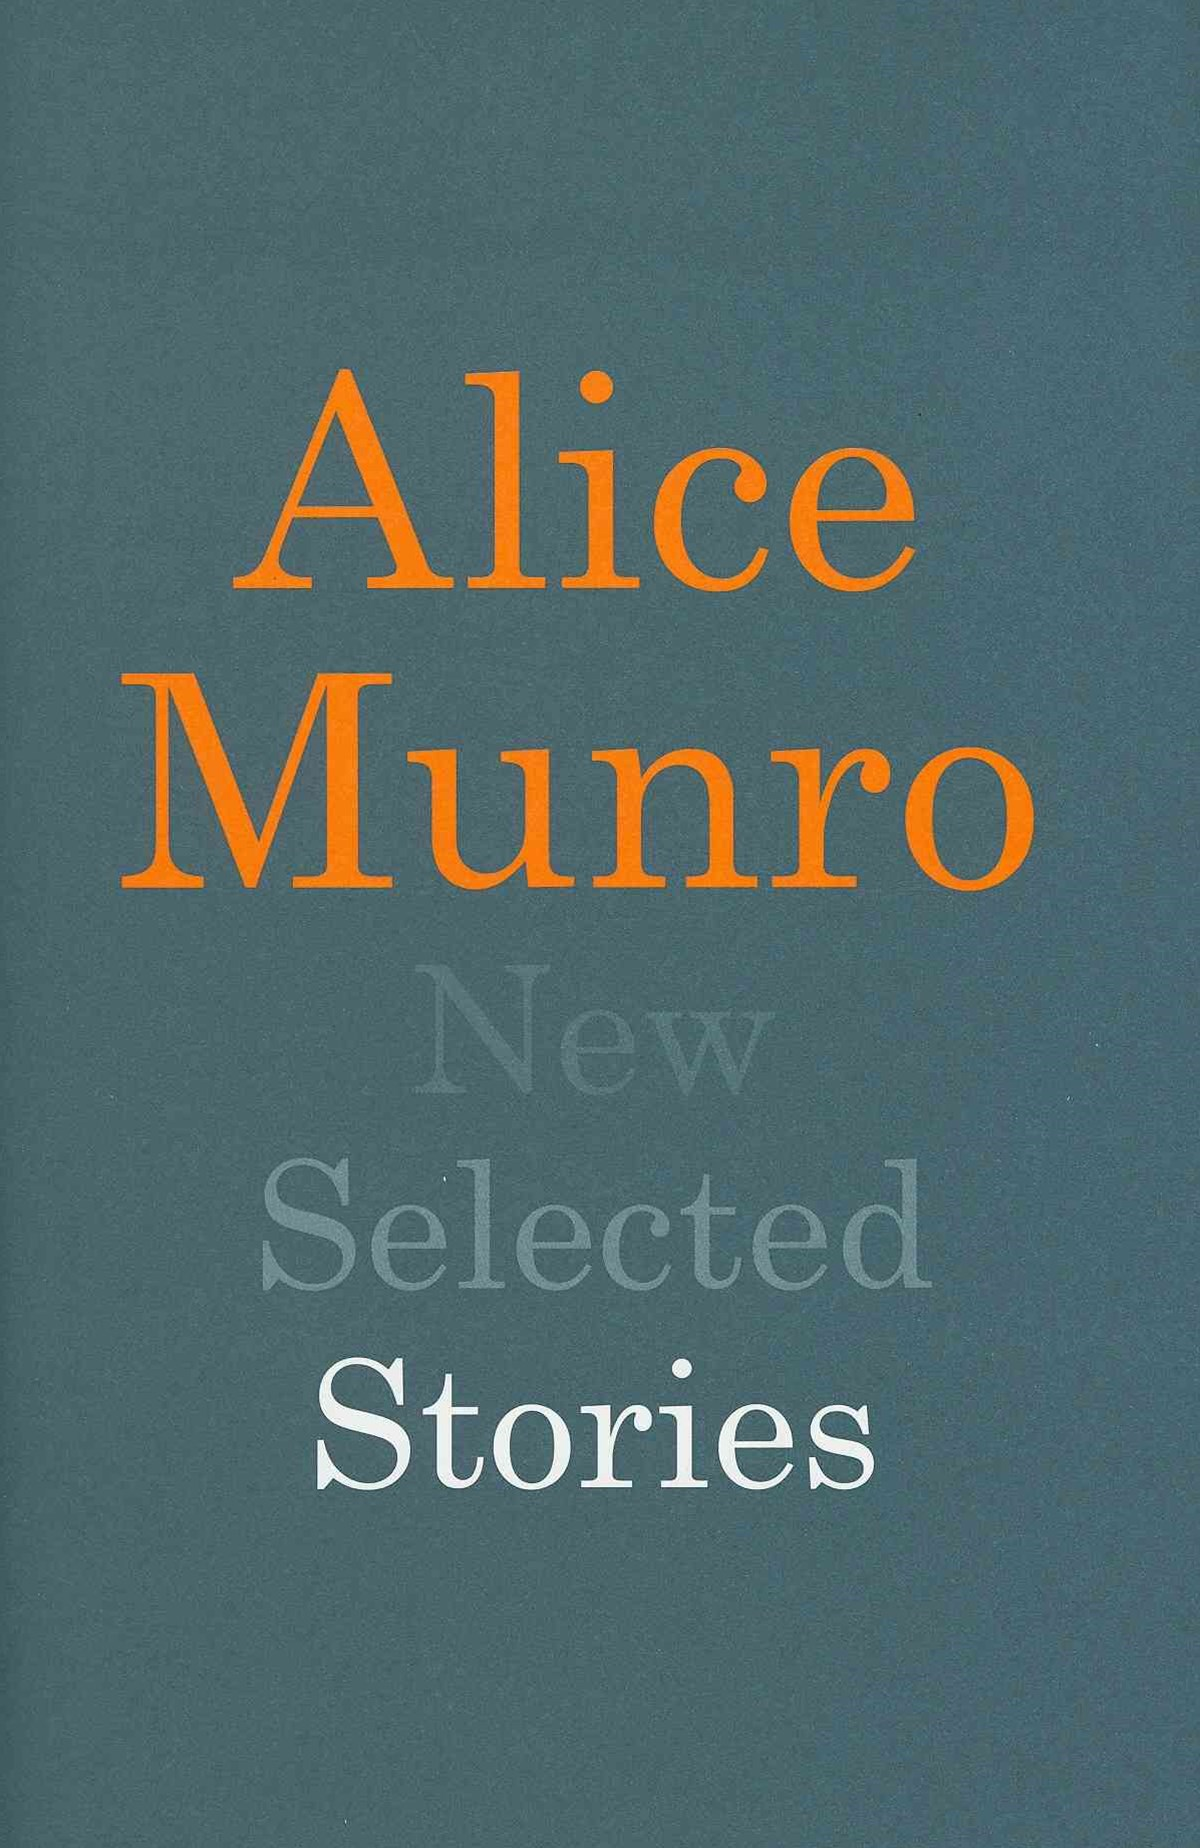 Alice Munro -- New Selected Stories